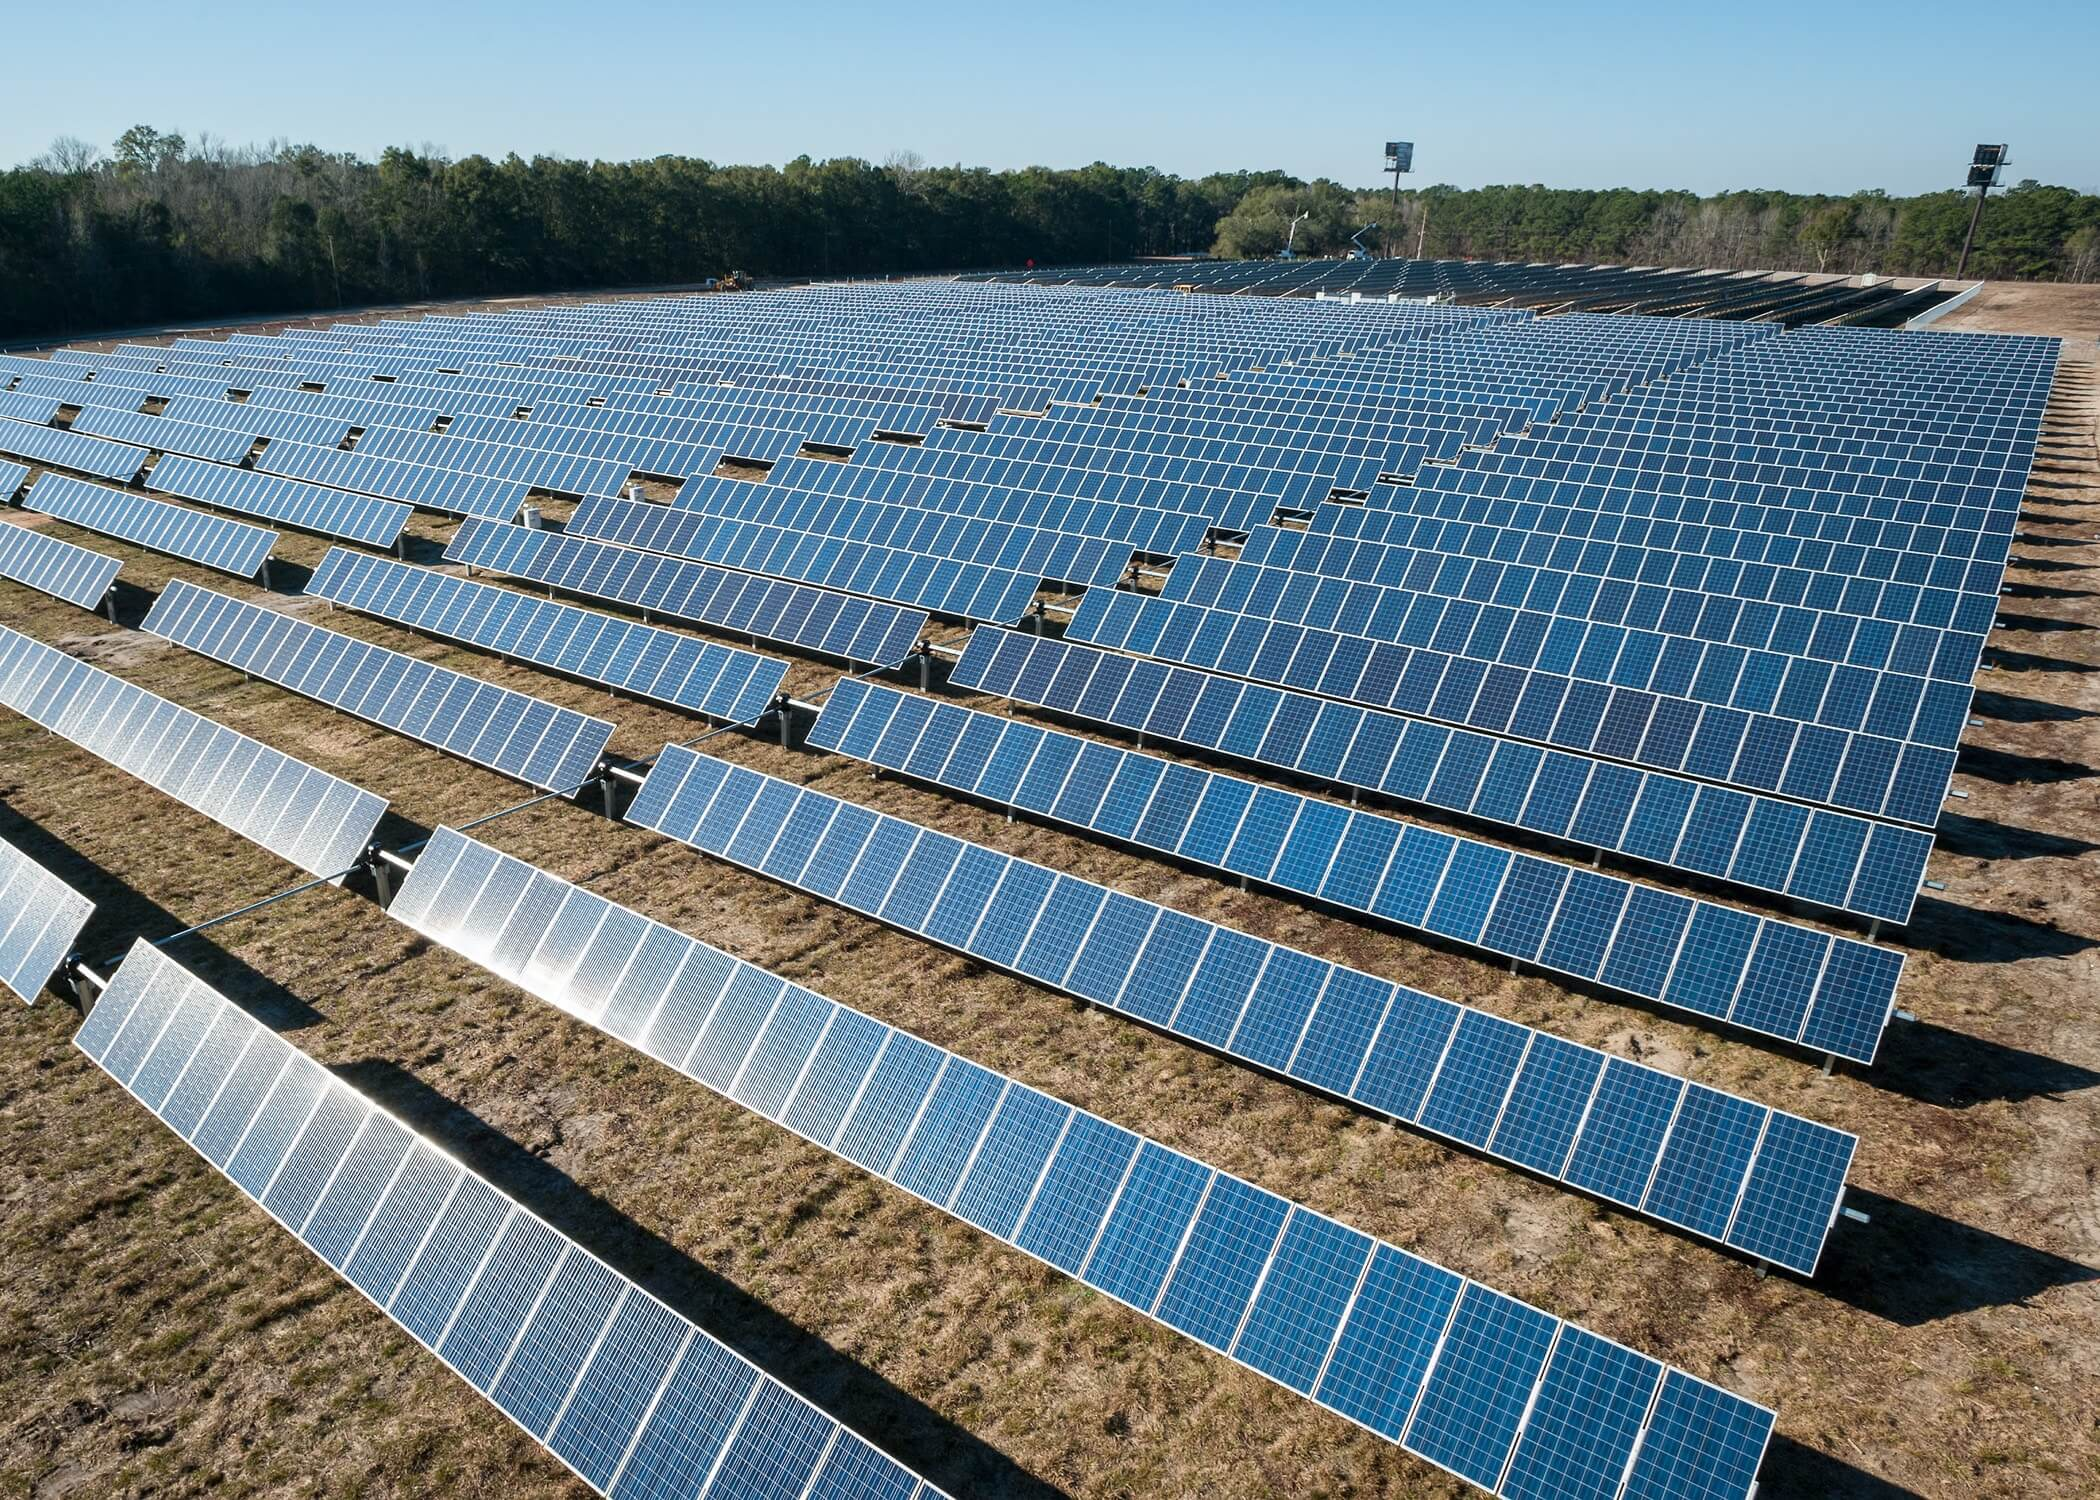 Empower Energies and Hannon Armstrong to Jointly Invest in Commercial & Industrial Solar